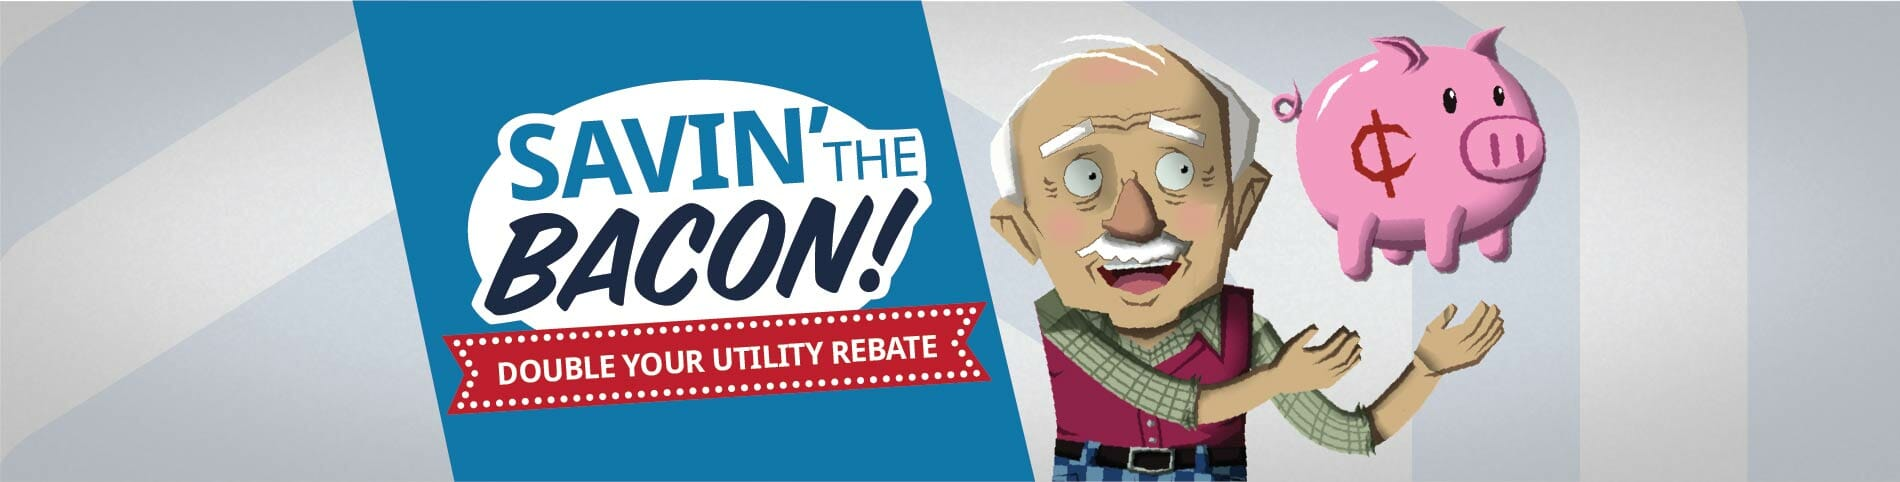 Double Your Utility Rebate